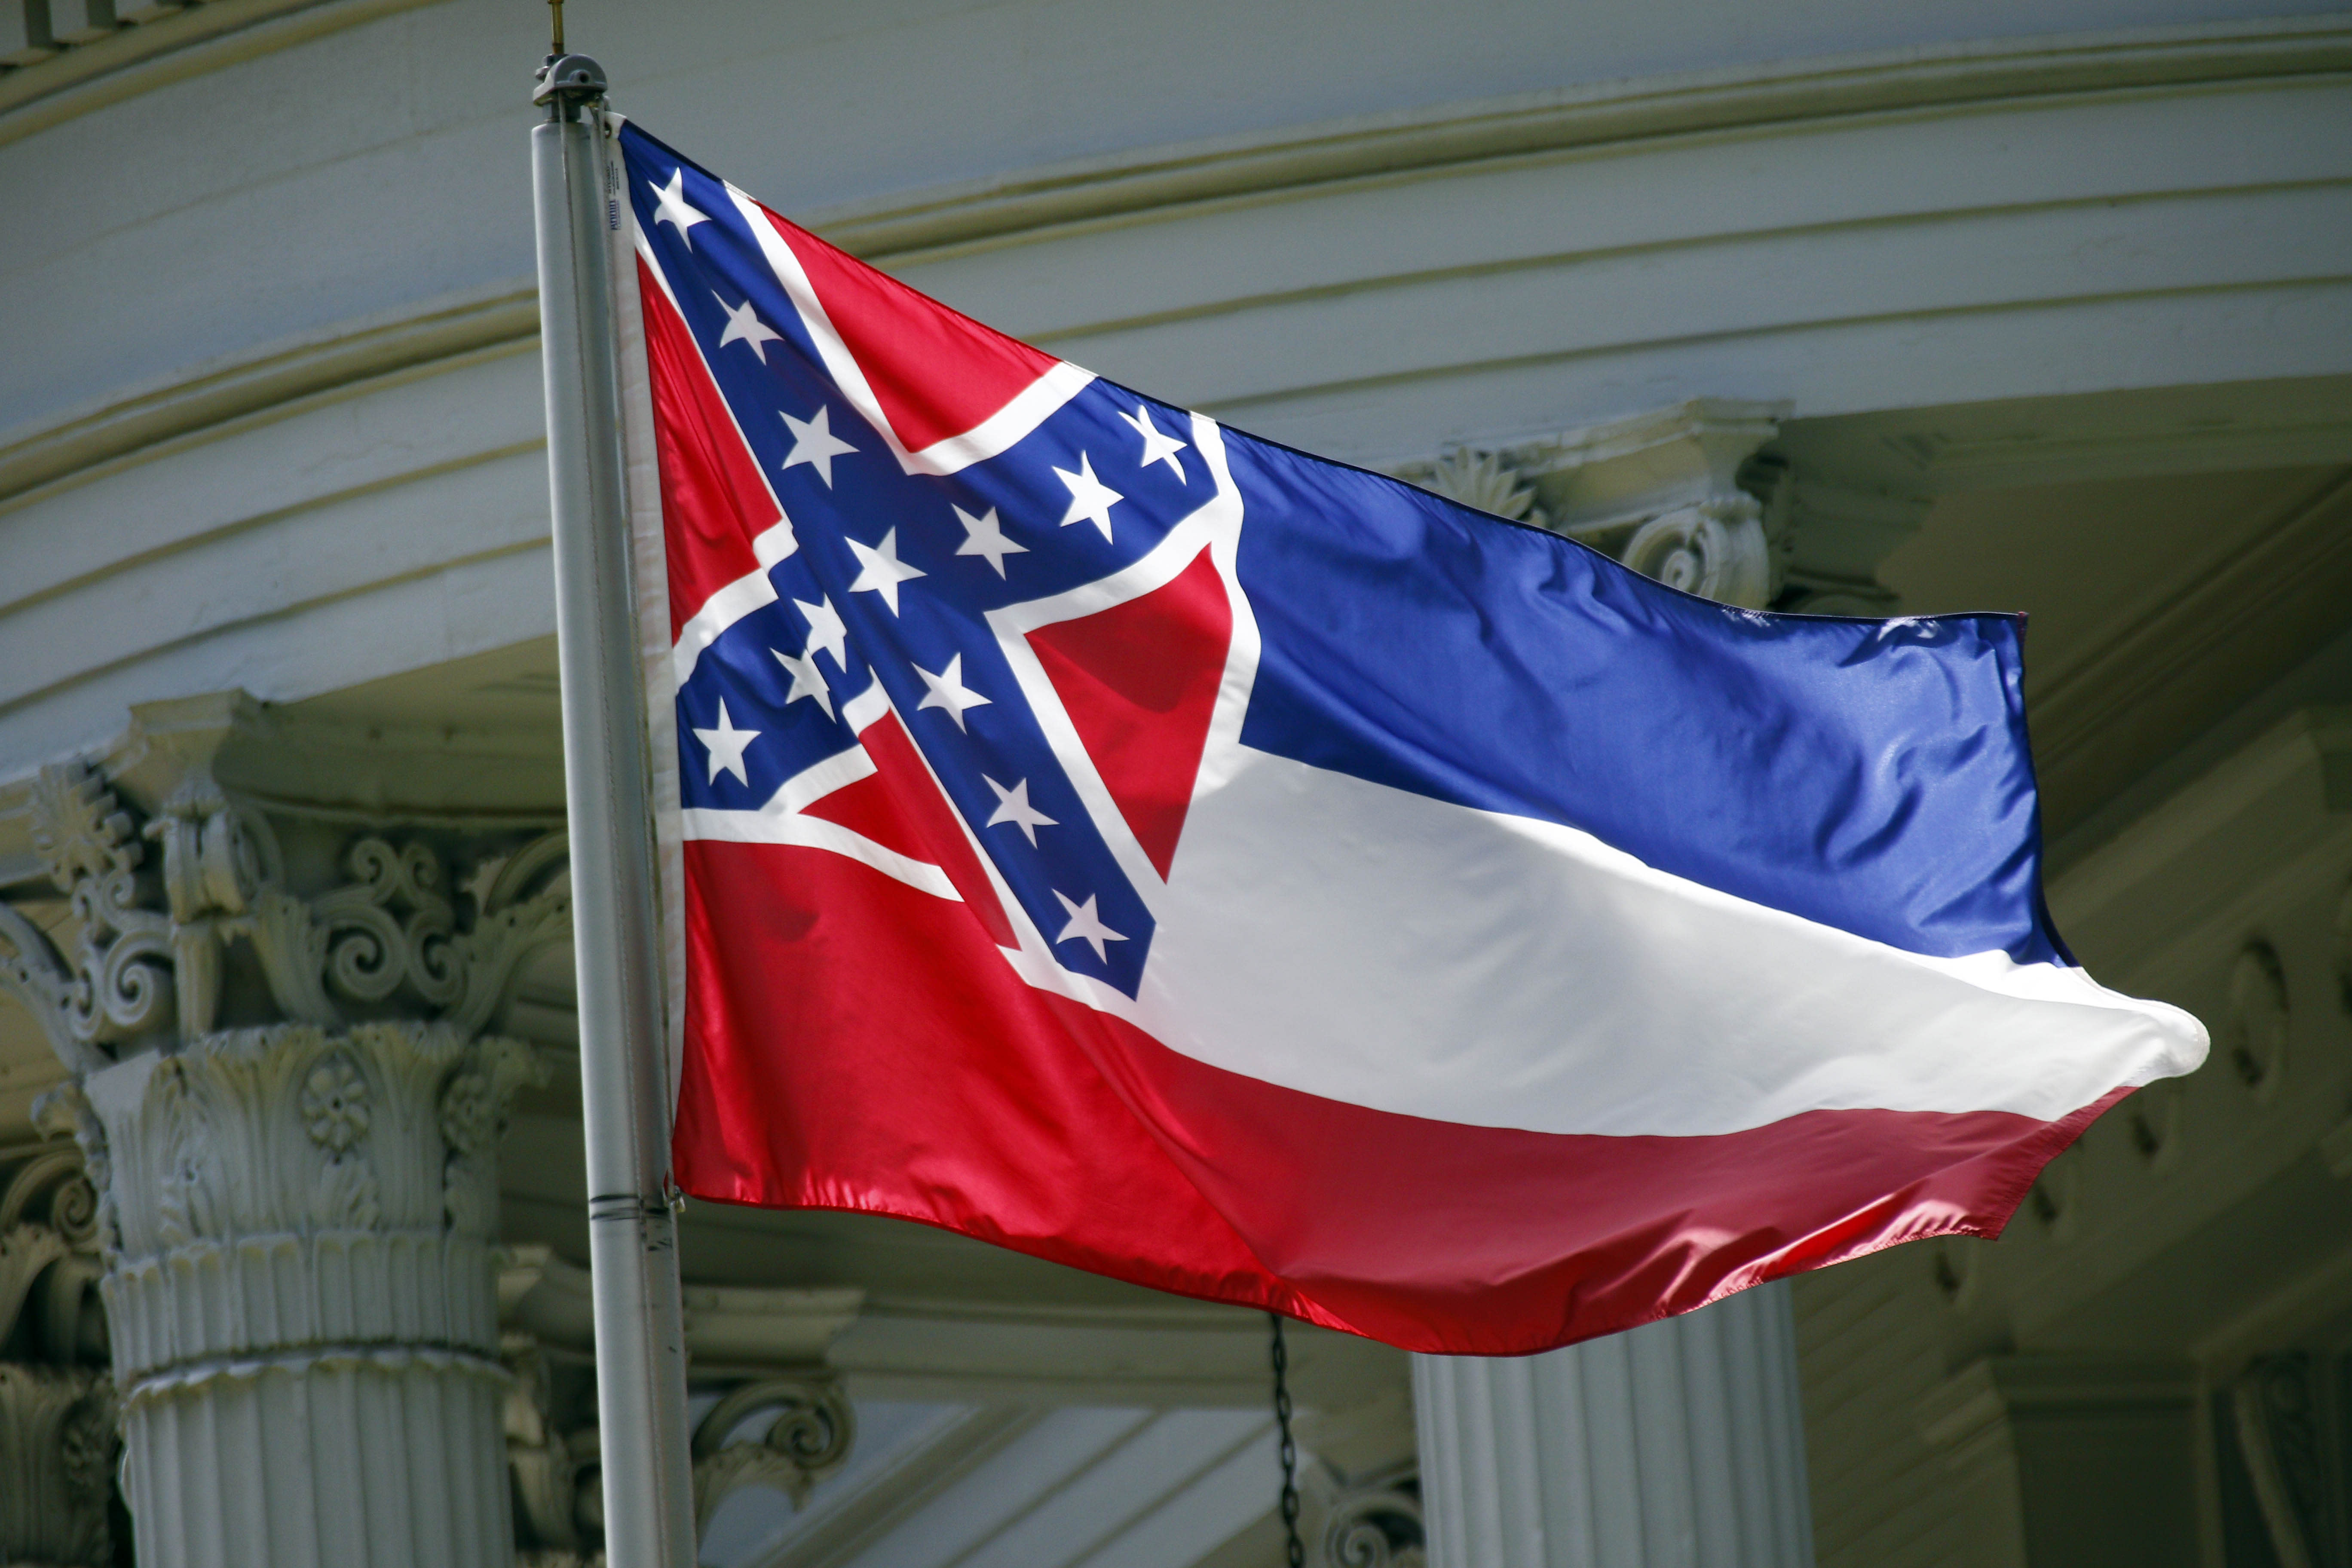 Proposal would erase Confederate sign from Mississippi flag